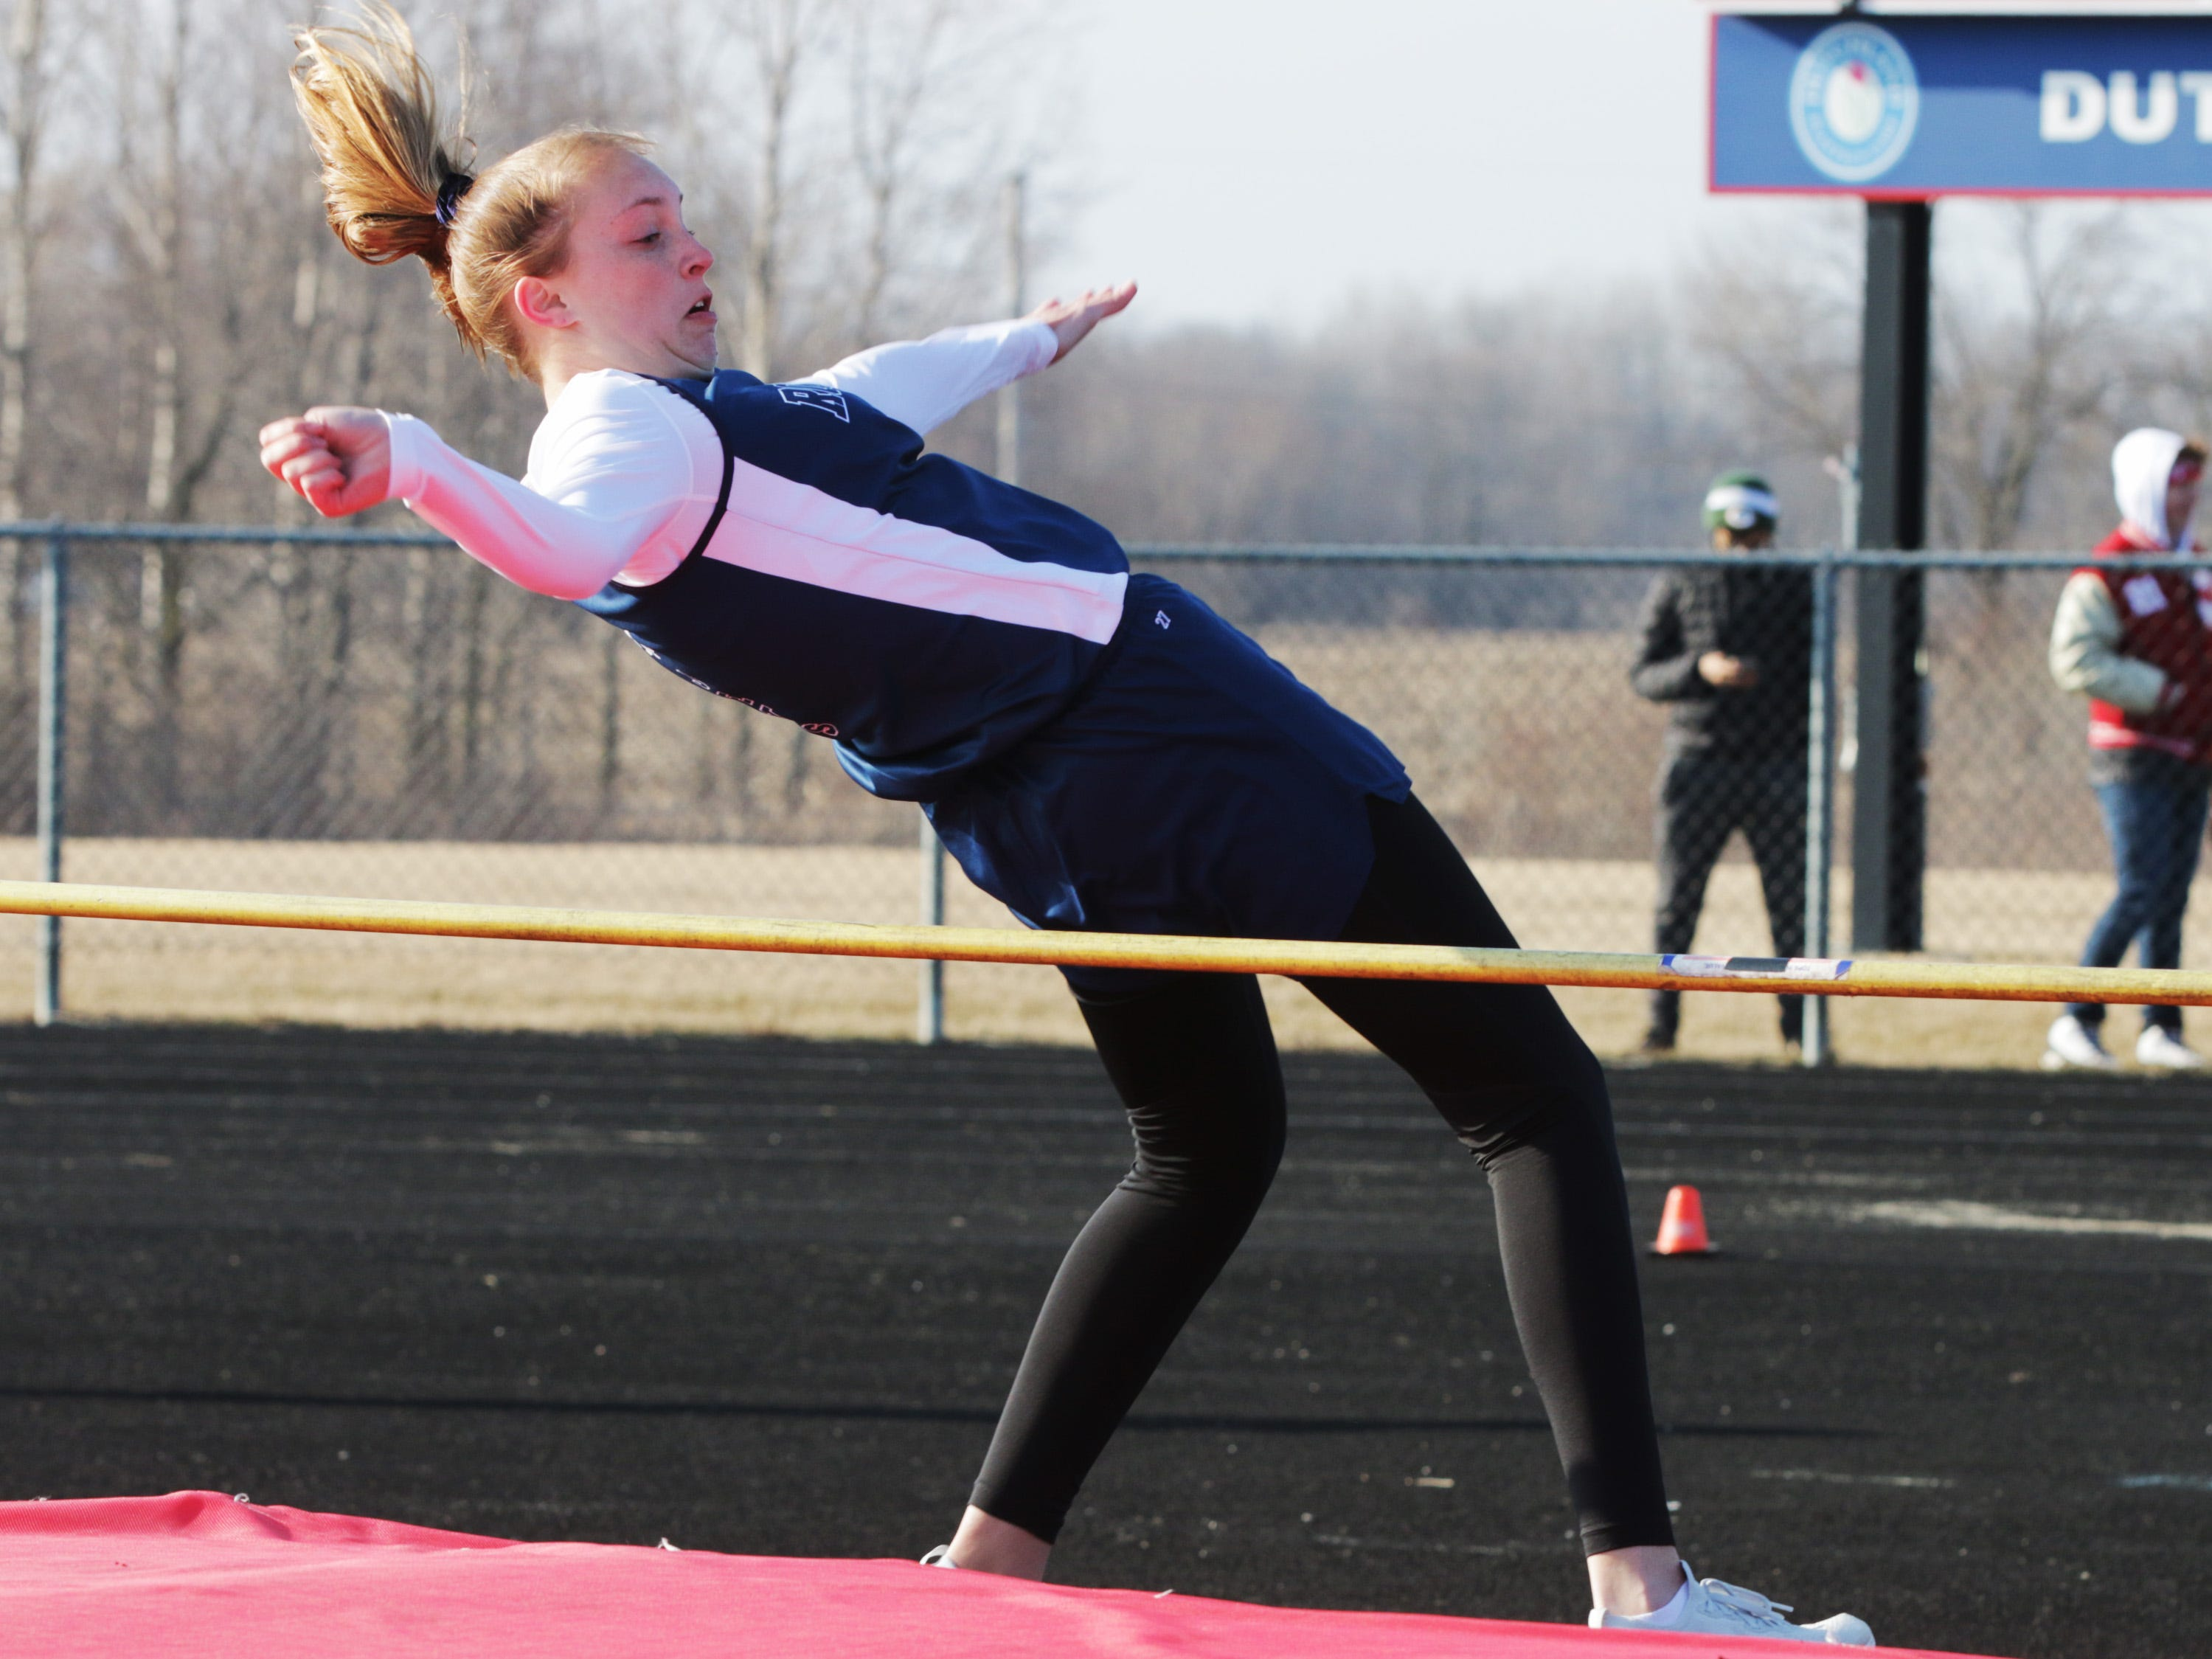 Roncalli's Maddie Paczkowski works to clear the high jump at the Flying Dutchmen Invite, Friday, April 5, 2019, in Oostburg, Wis.